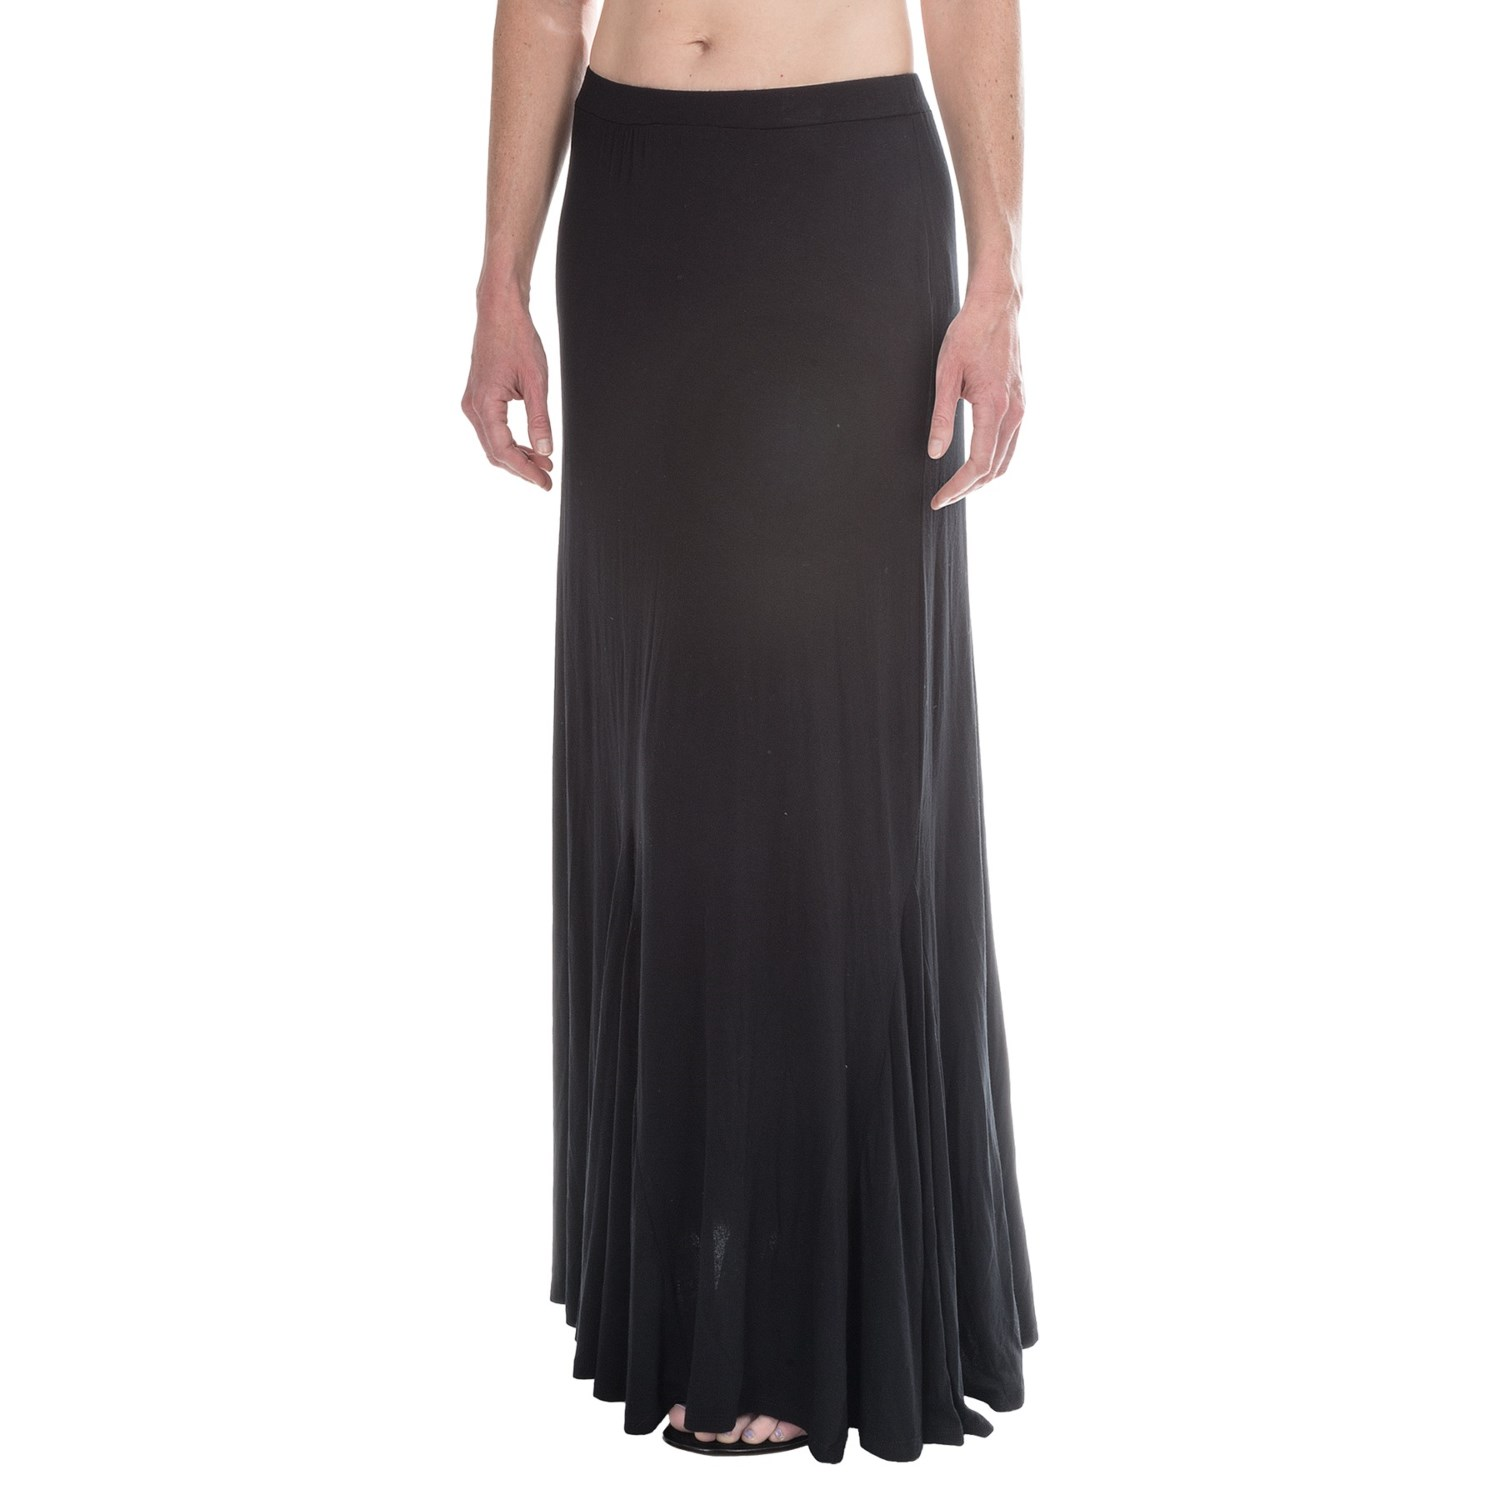 stretchy knit maxi skirt for save 61